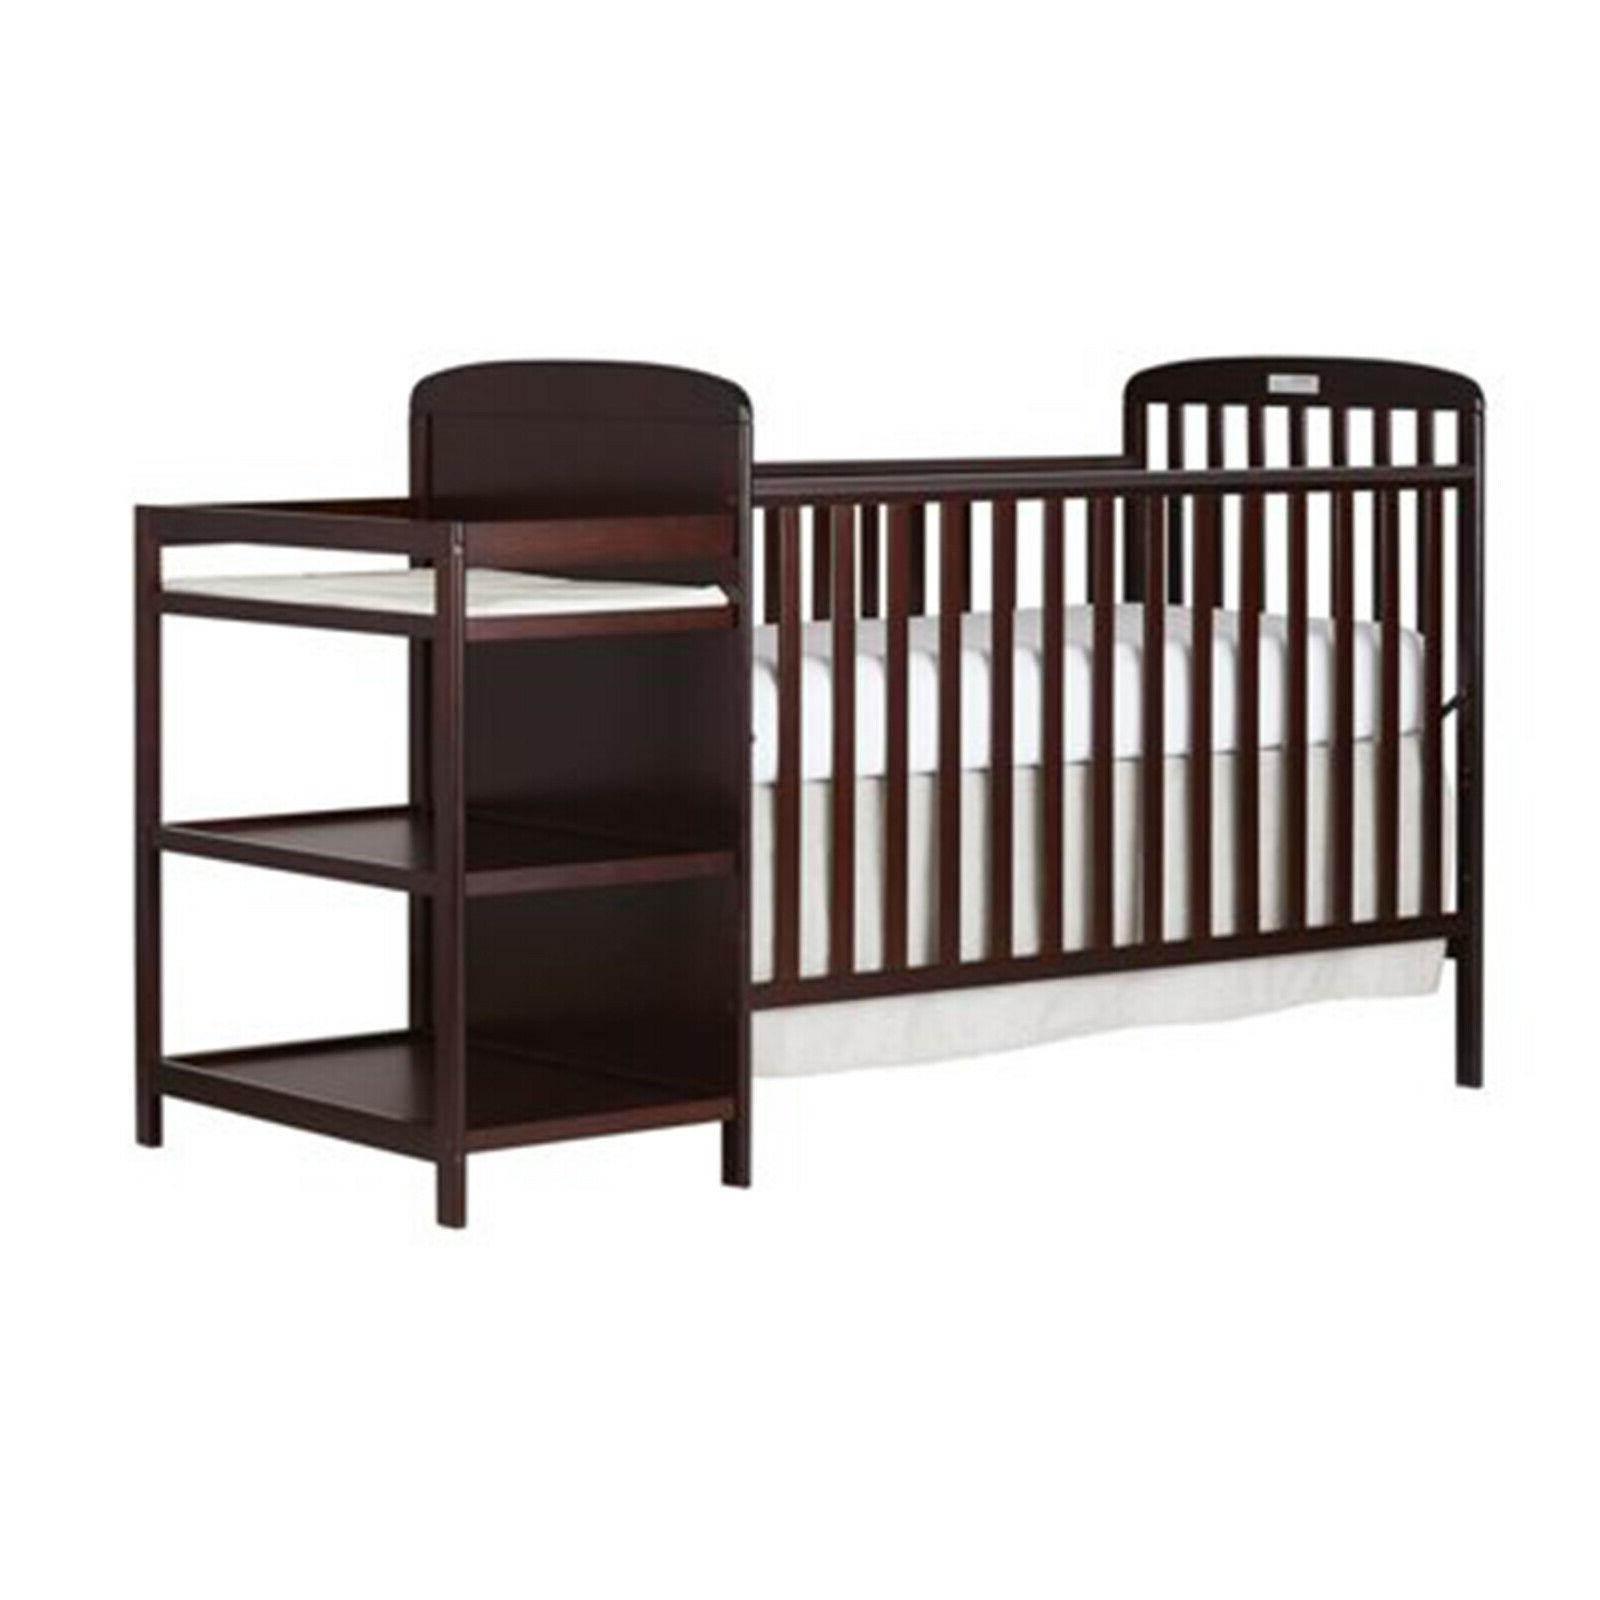 Baby Mattress 4-in-1 Full Changing Table Combo